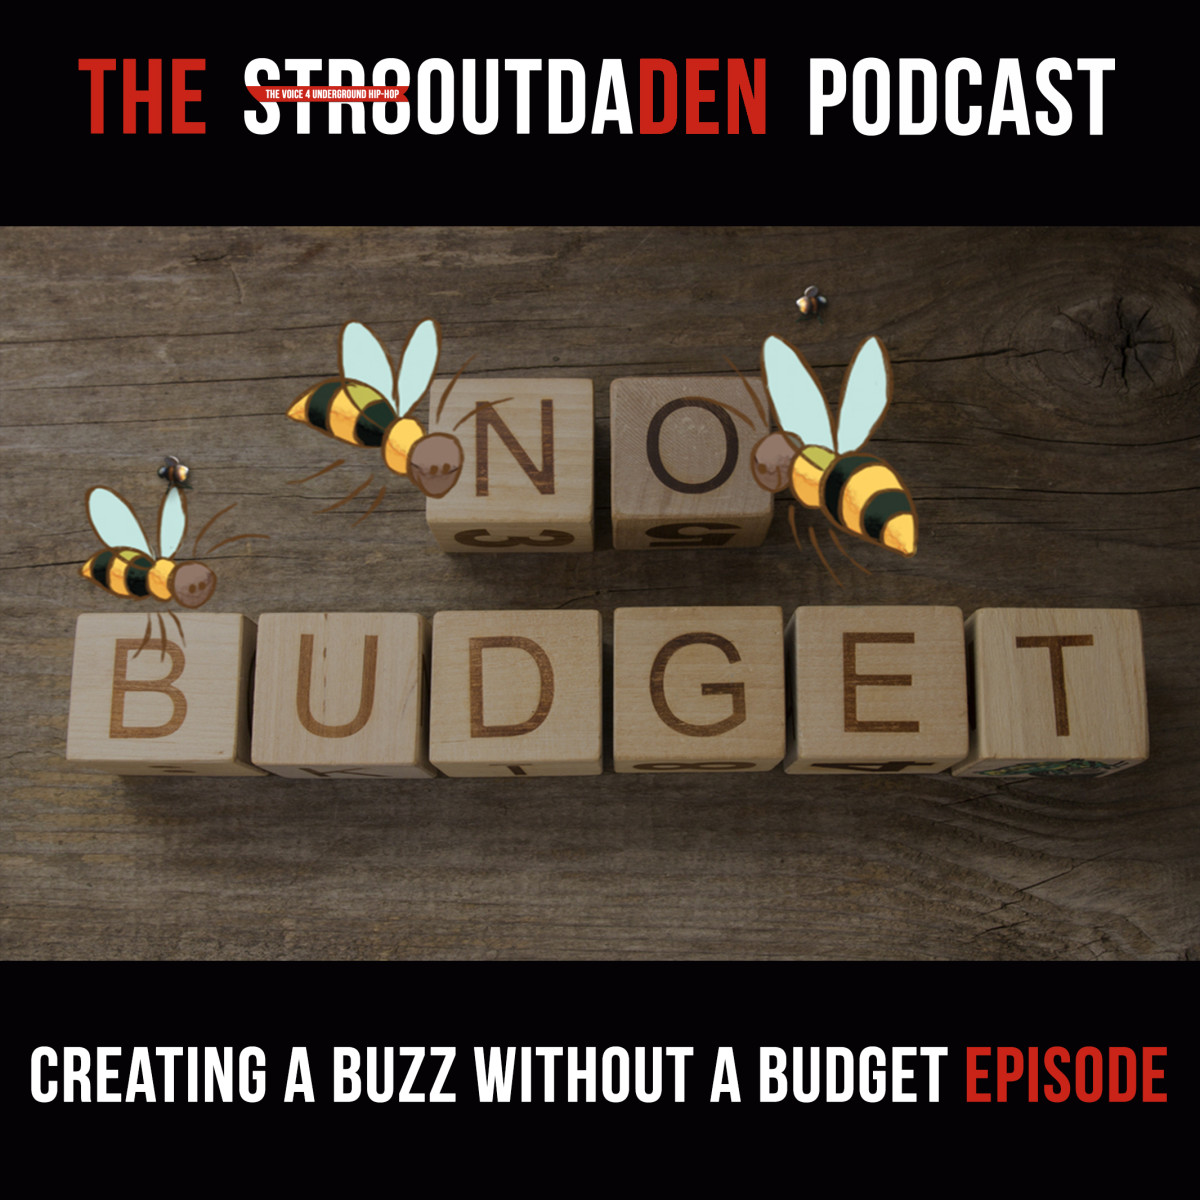 Creating a Buzz Without A Budget